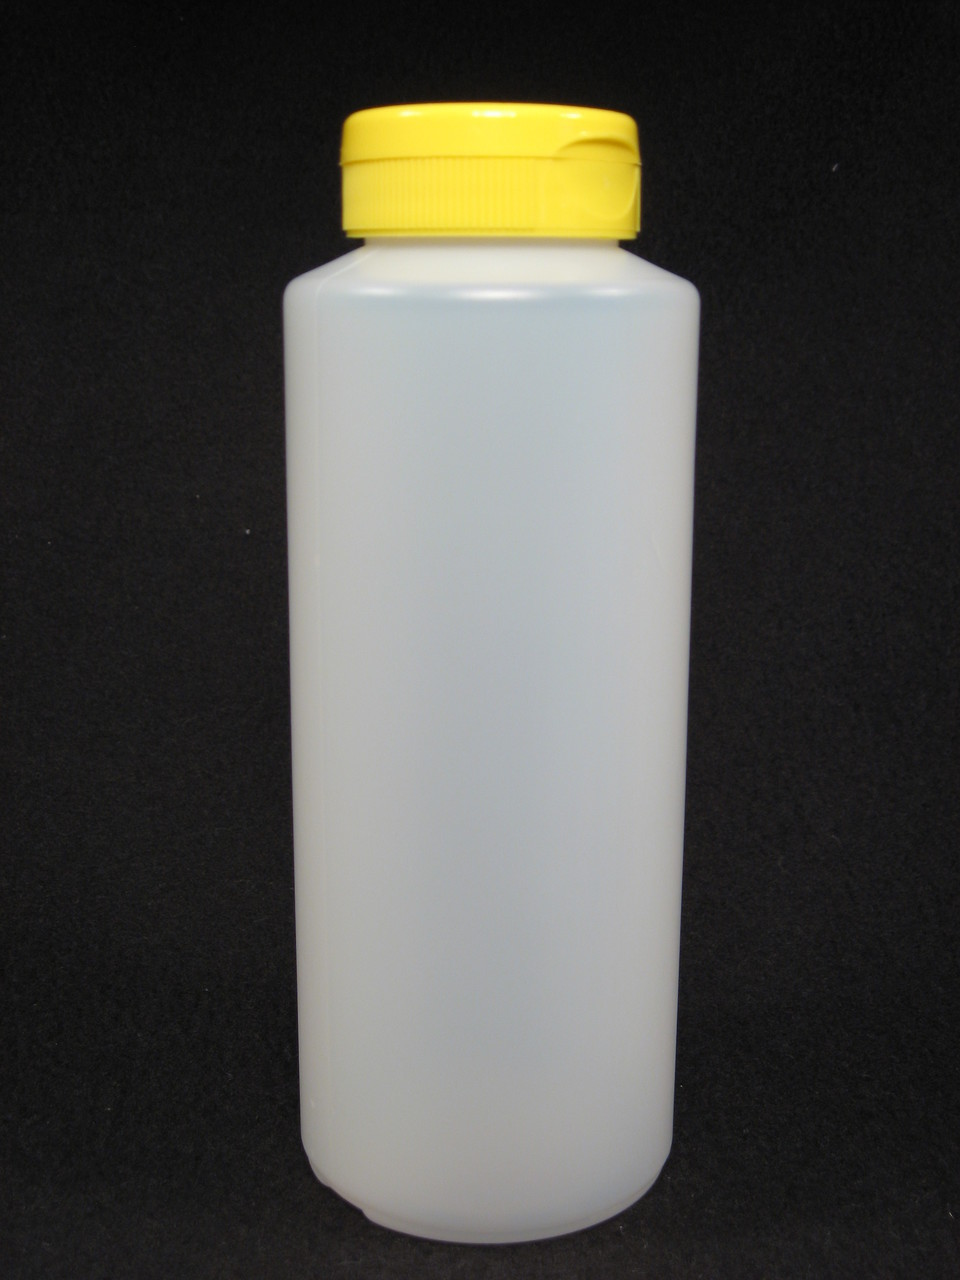 16 oz. Cylinder honey bottles - case of 300 with yellow flip top lids